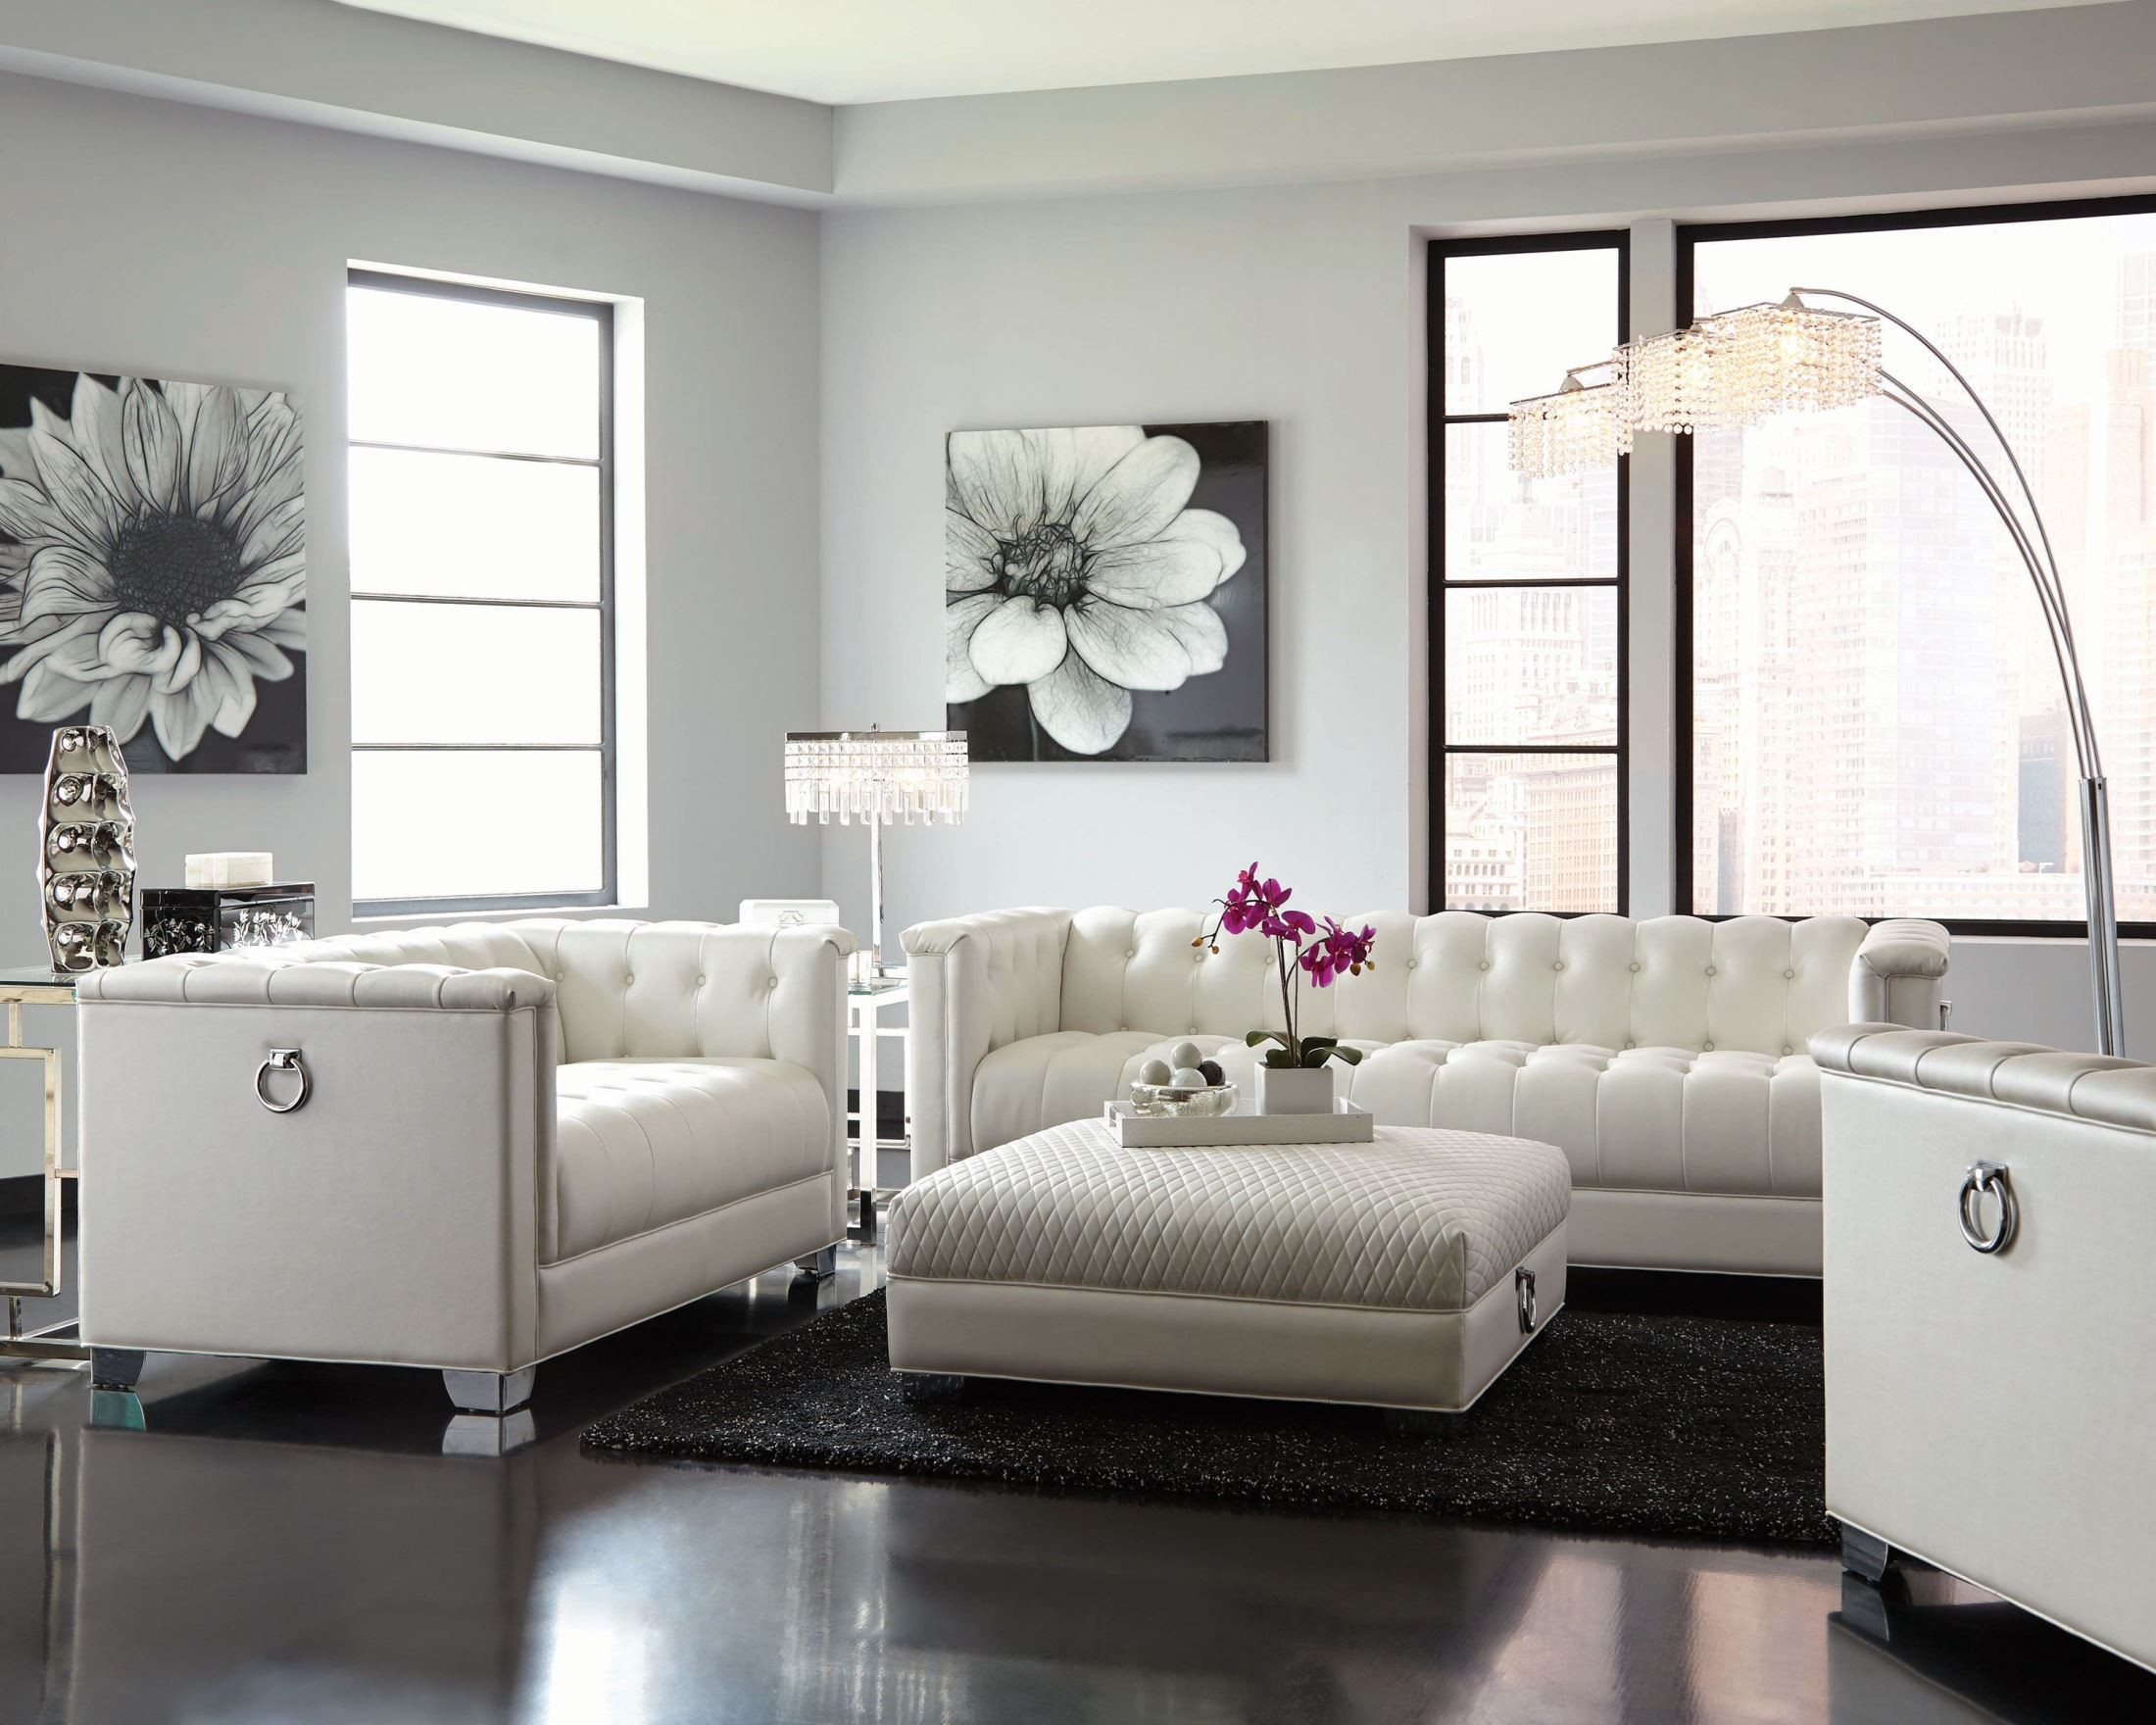 How to select white tufted loveseat furniture